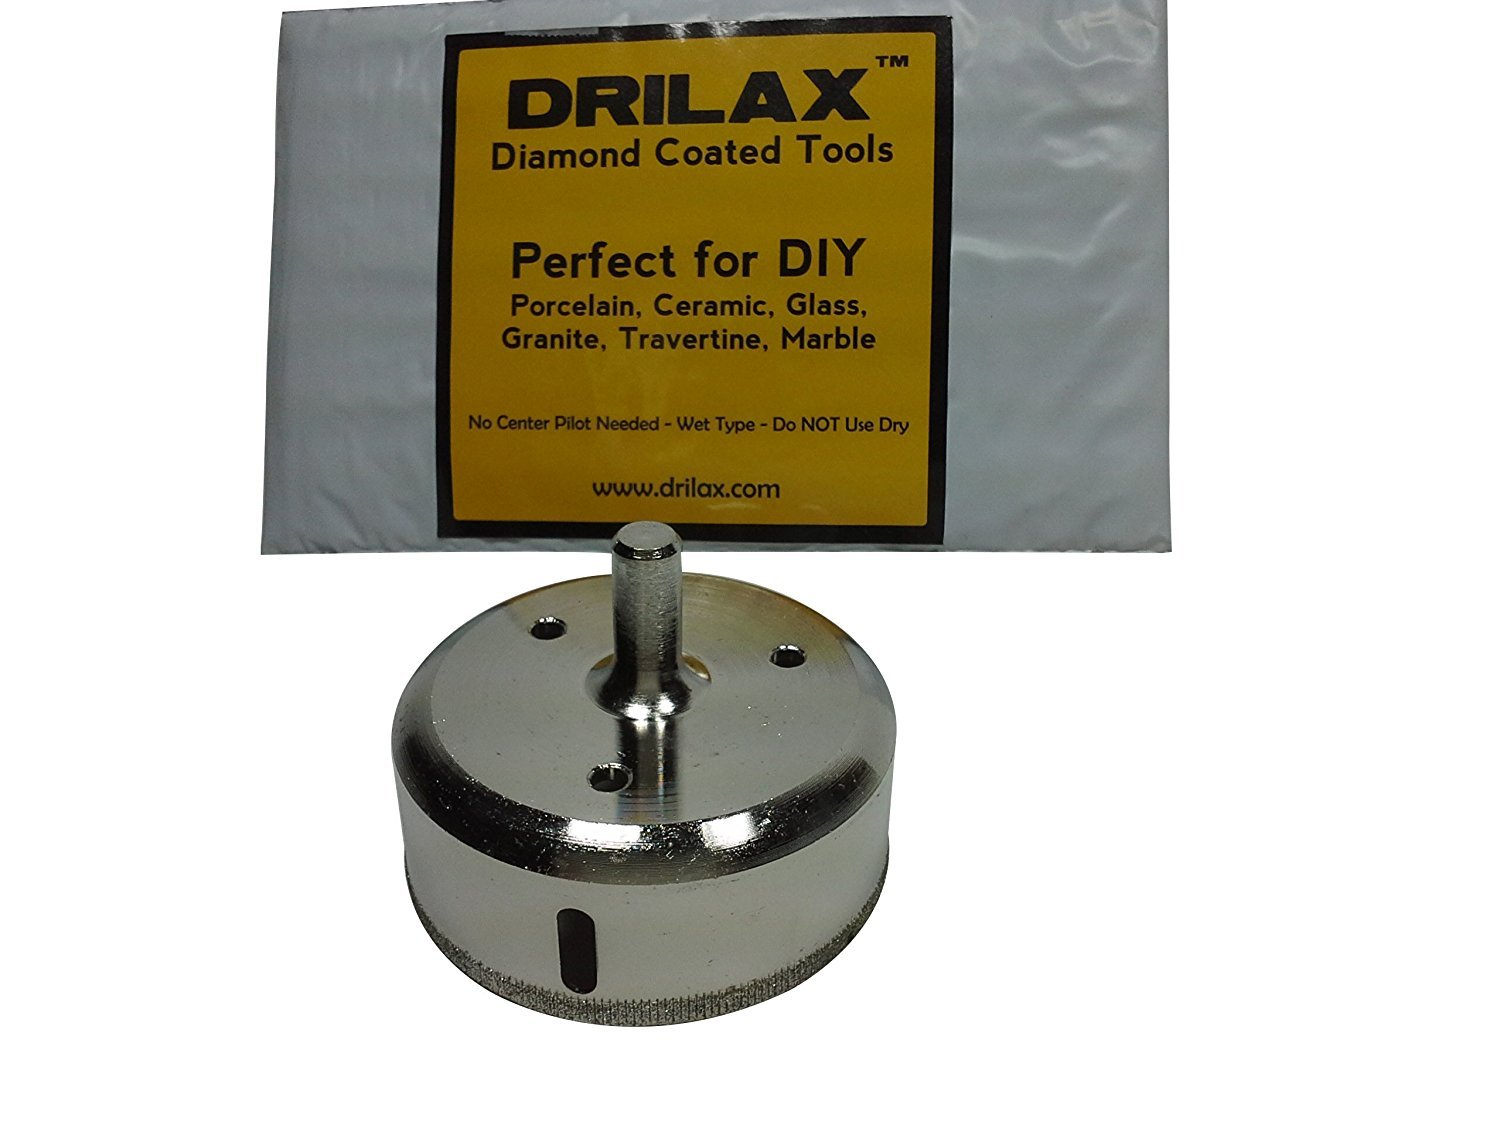 Drilax 3 inch Diamond Hole Saw Drill Bit Tiles, Glass, Fish Tanks, Marble, Granite Countertop, Ceramic, Porcelain, Coated Core Bits Holesaw DIY Kitchen, Bathroom, Shower, Faucet Installation by DRILAX